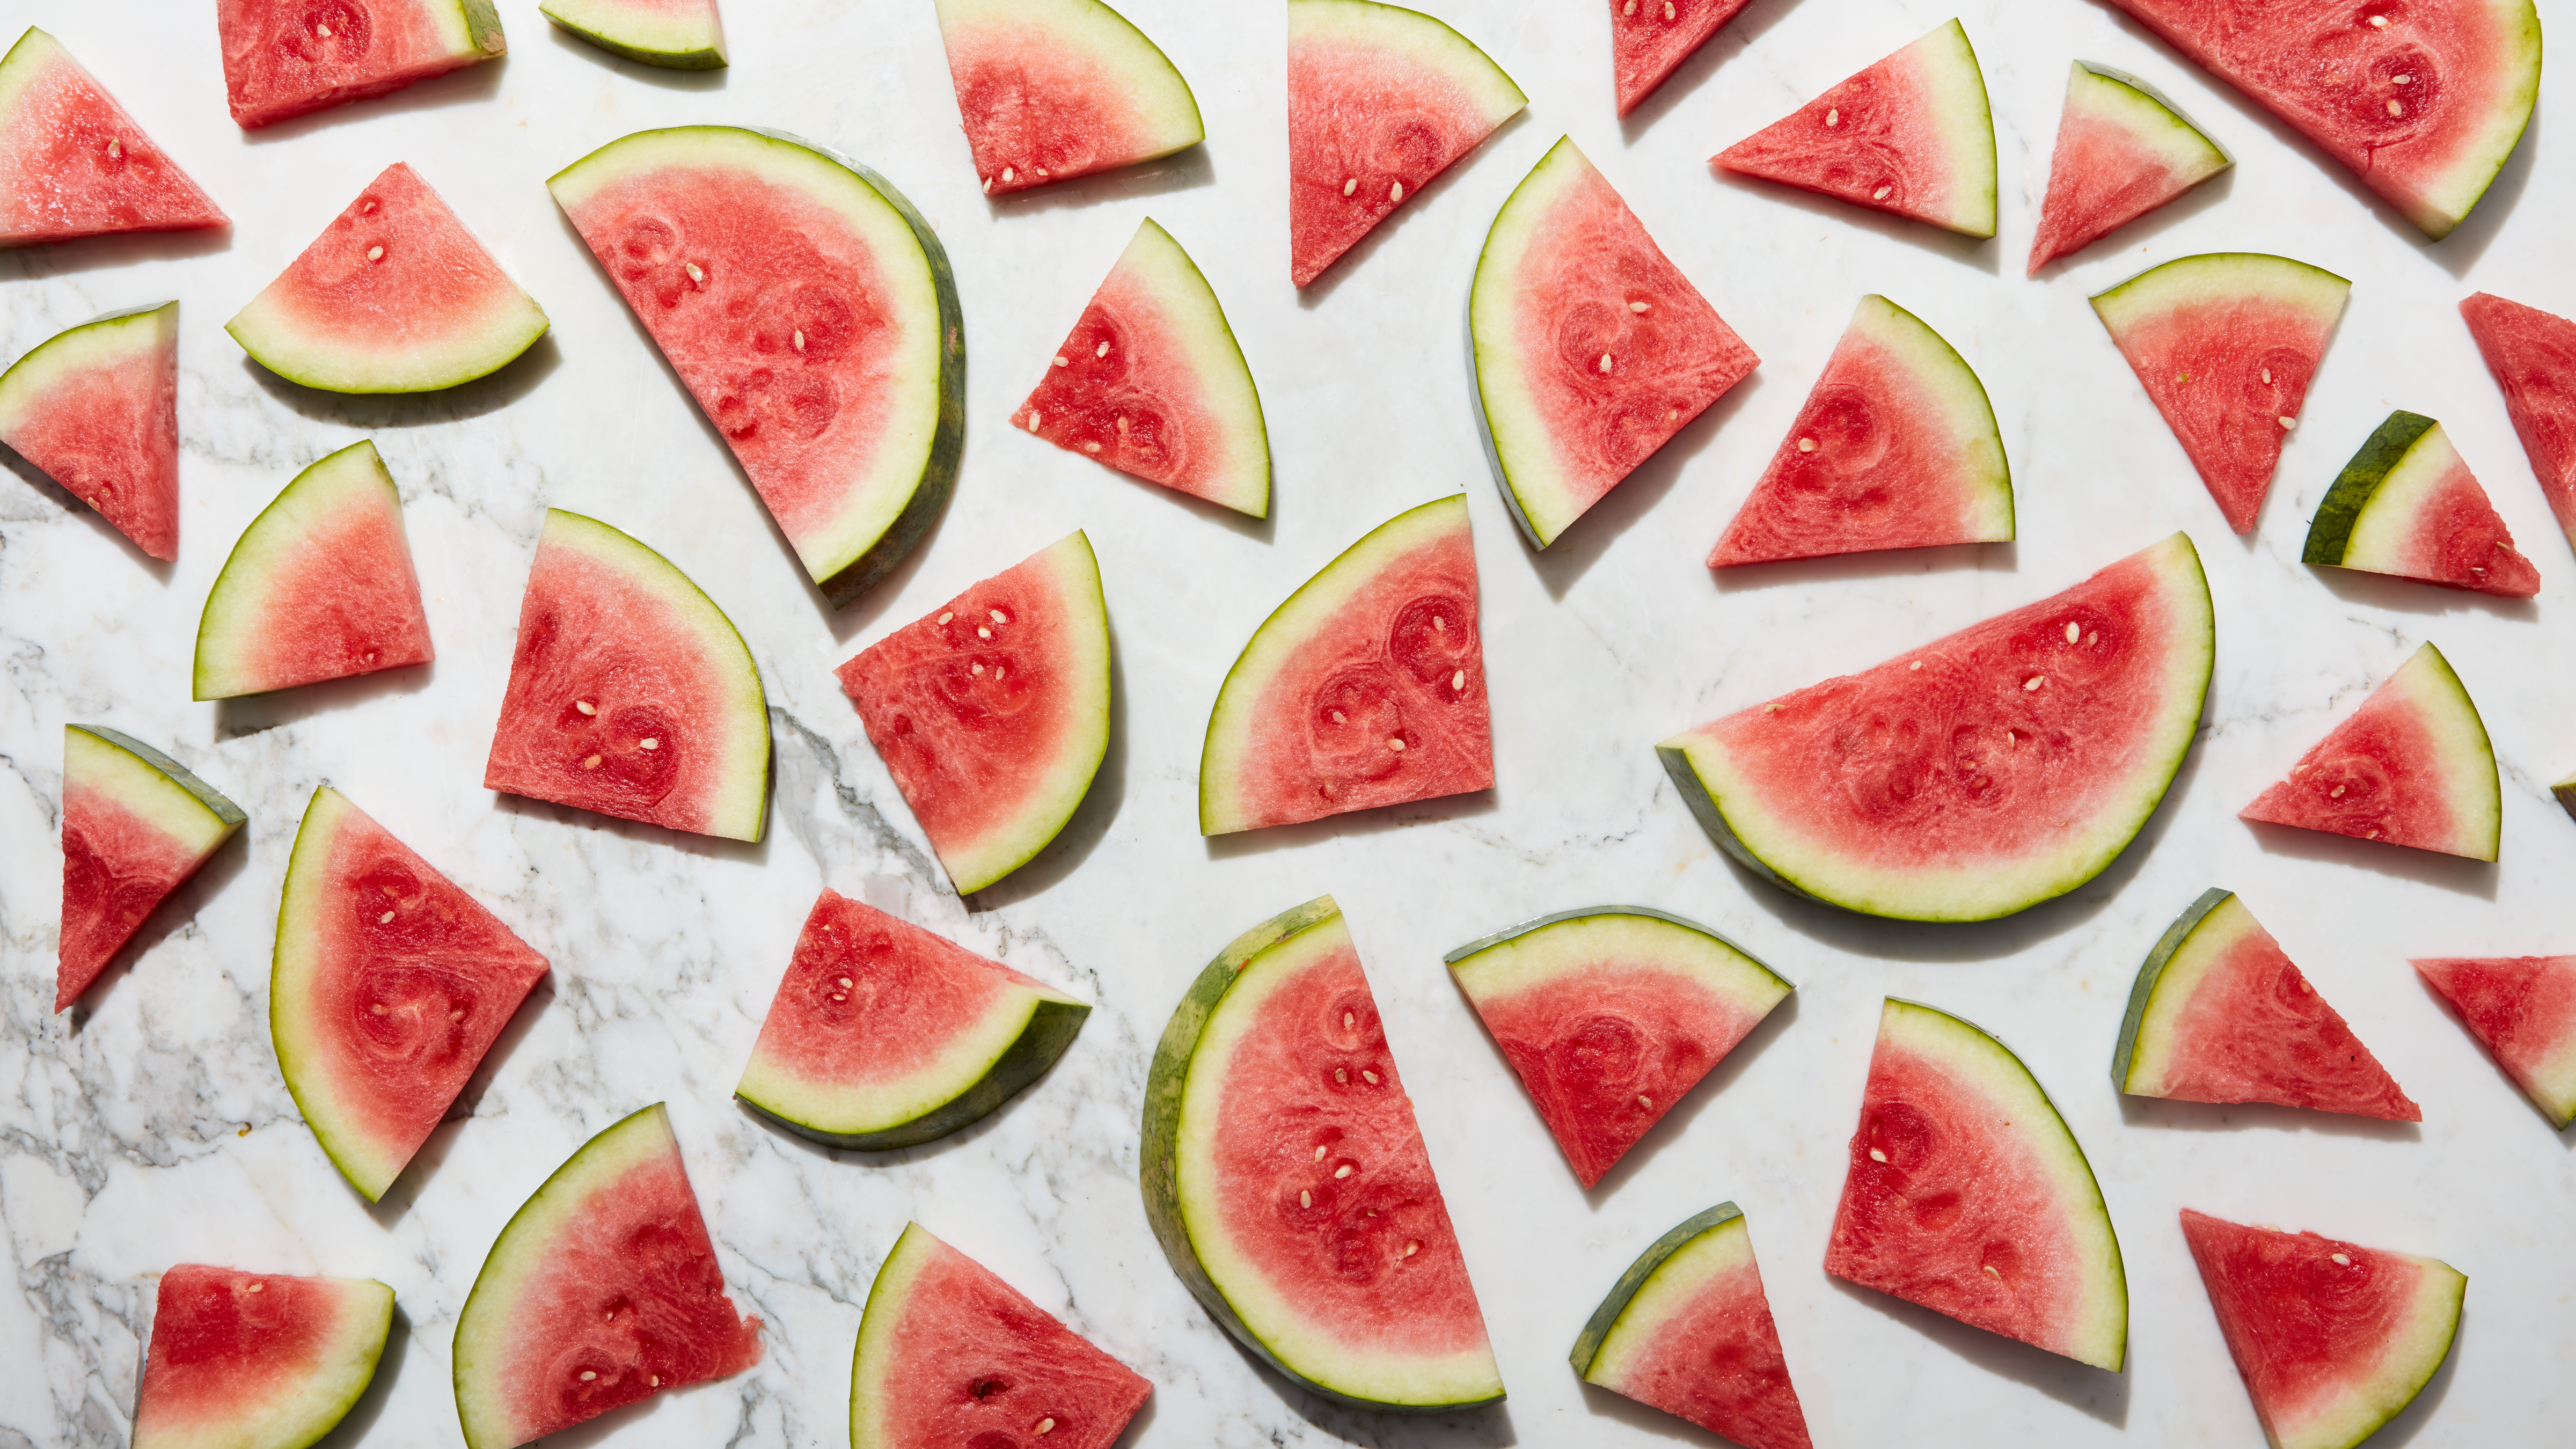 4800x2700 - Watermelon Wallpapers 14